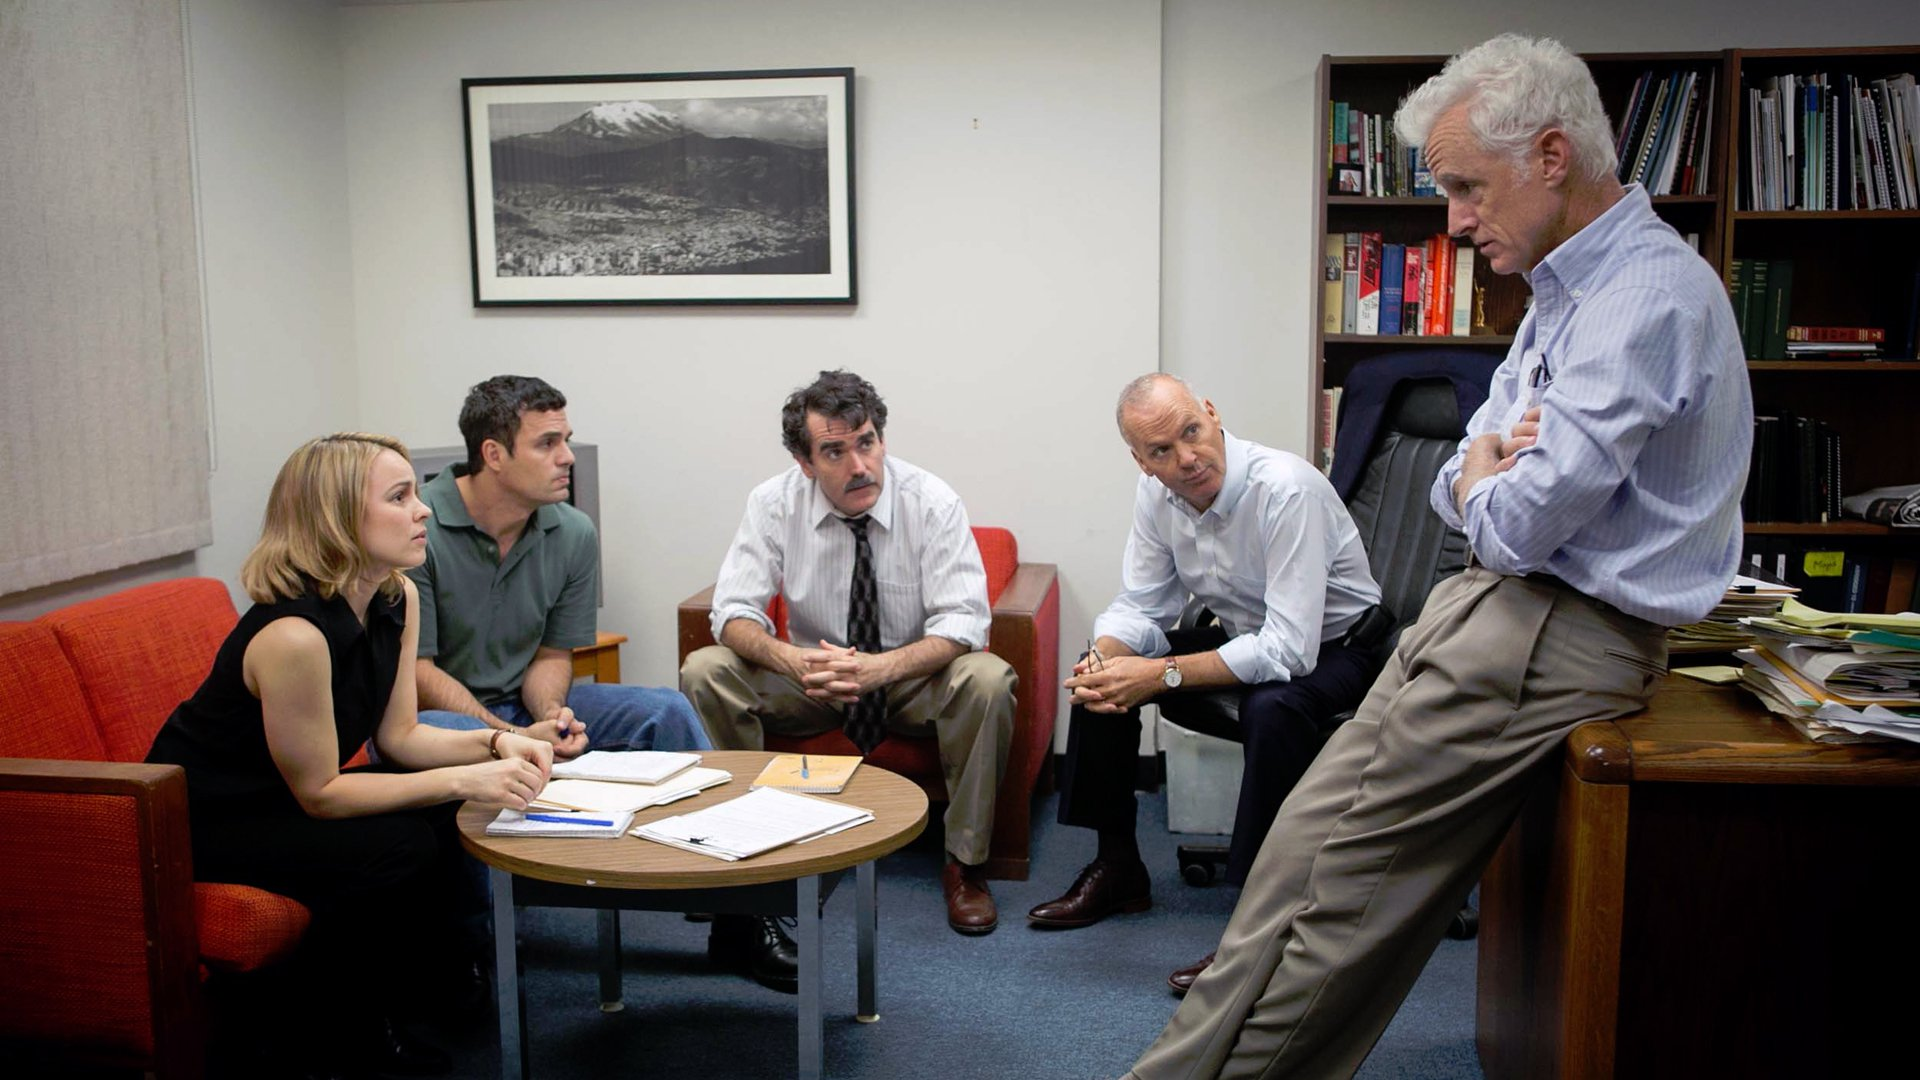 Il caso Spotlight: recensione del film con Mark Ruffalo e Michael Keaton